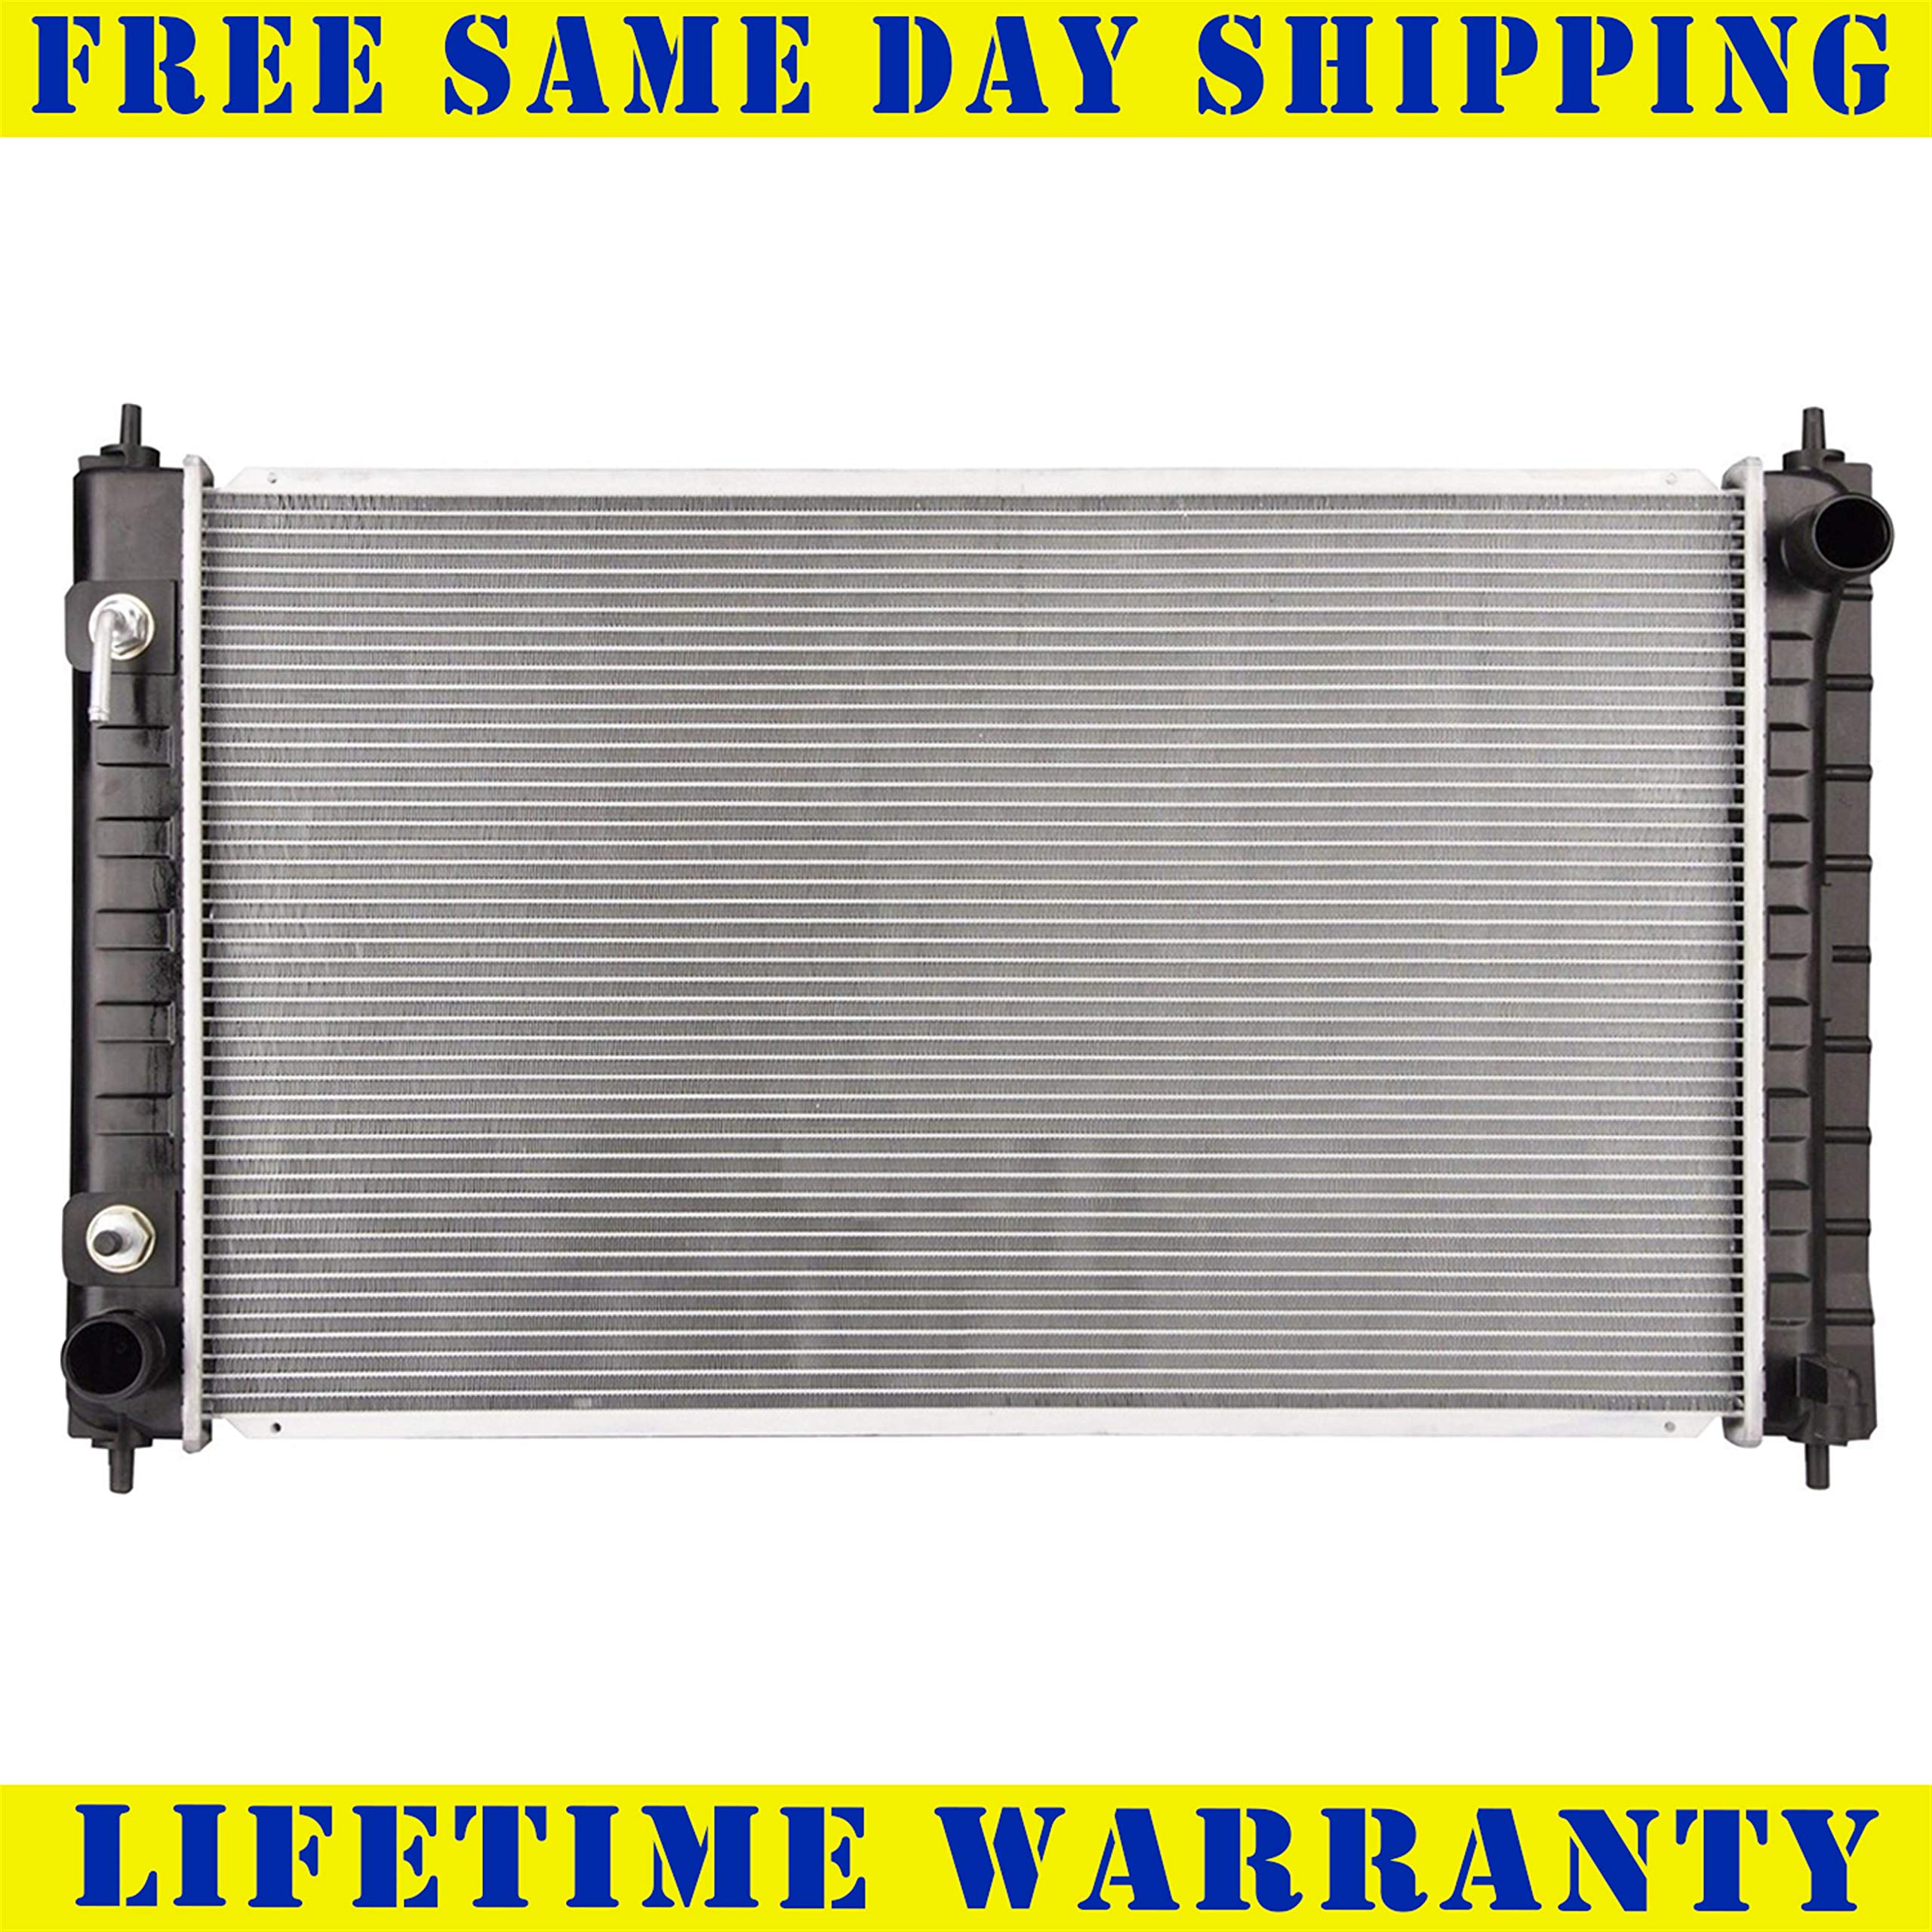 Radiator For 2007-2018 Nissan Altima 2.5L 3.5L 4CYL V6 2009-2018 Maxima 3.5L V6